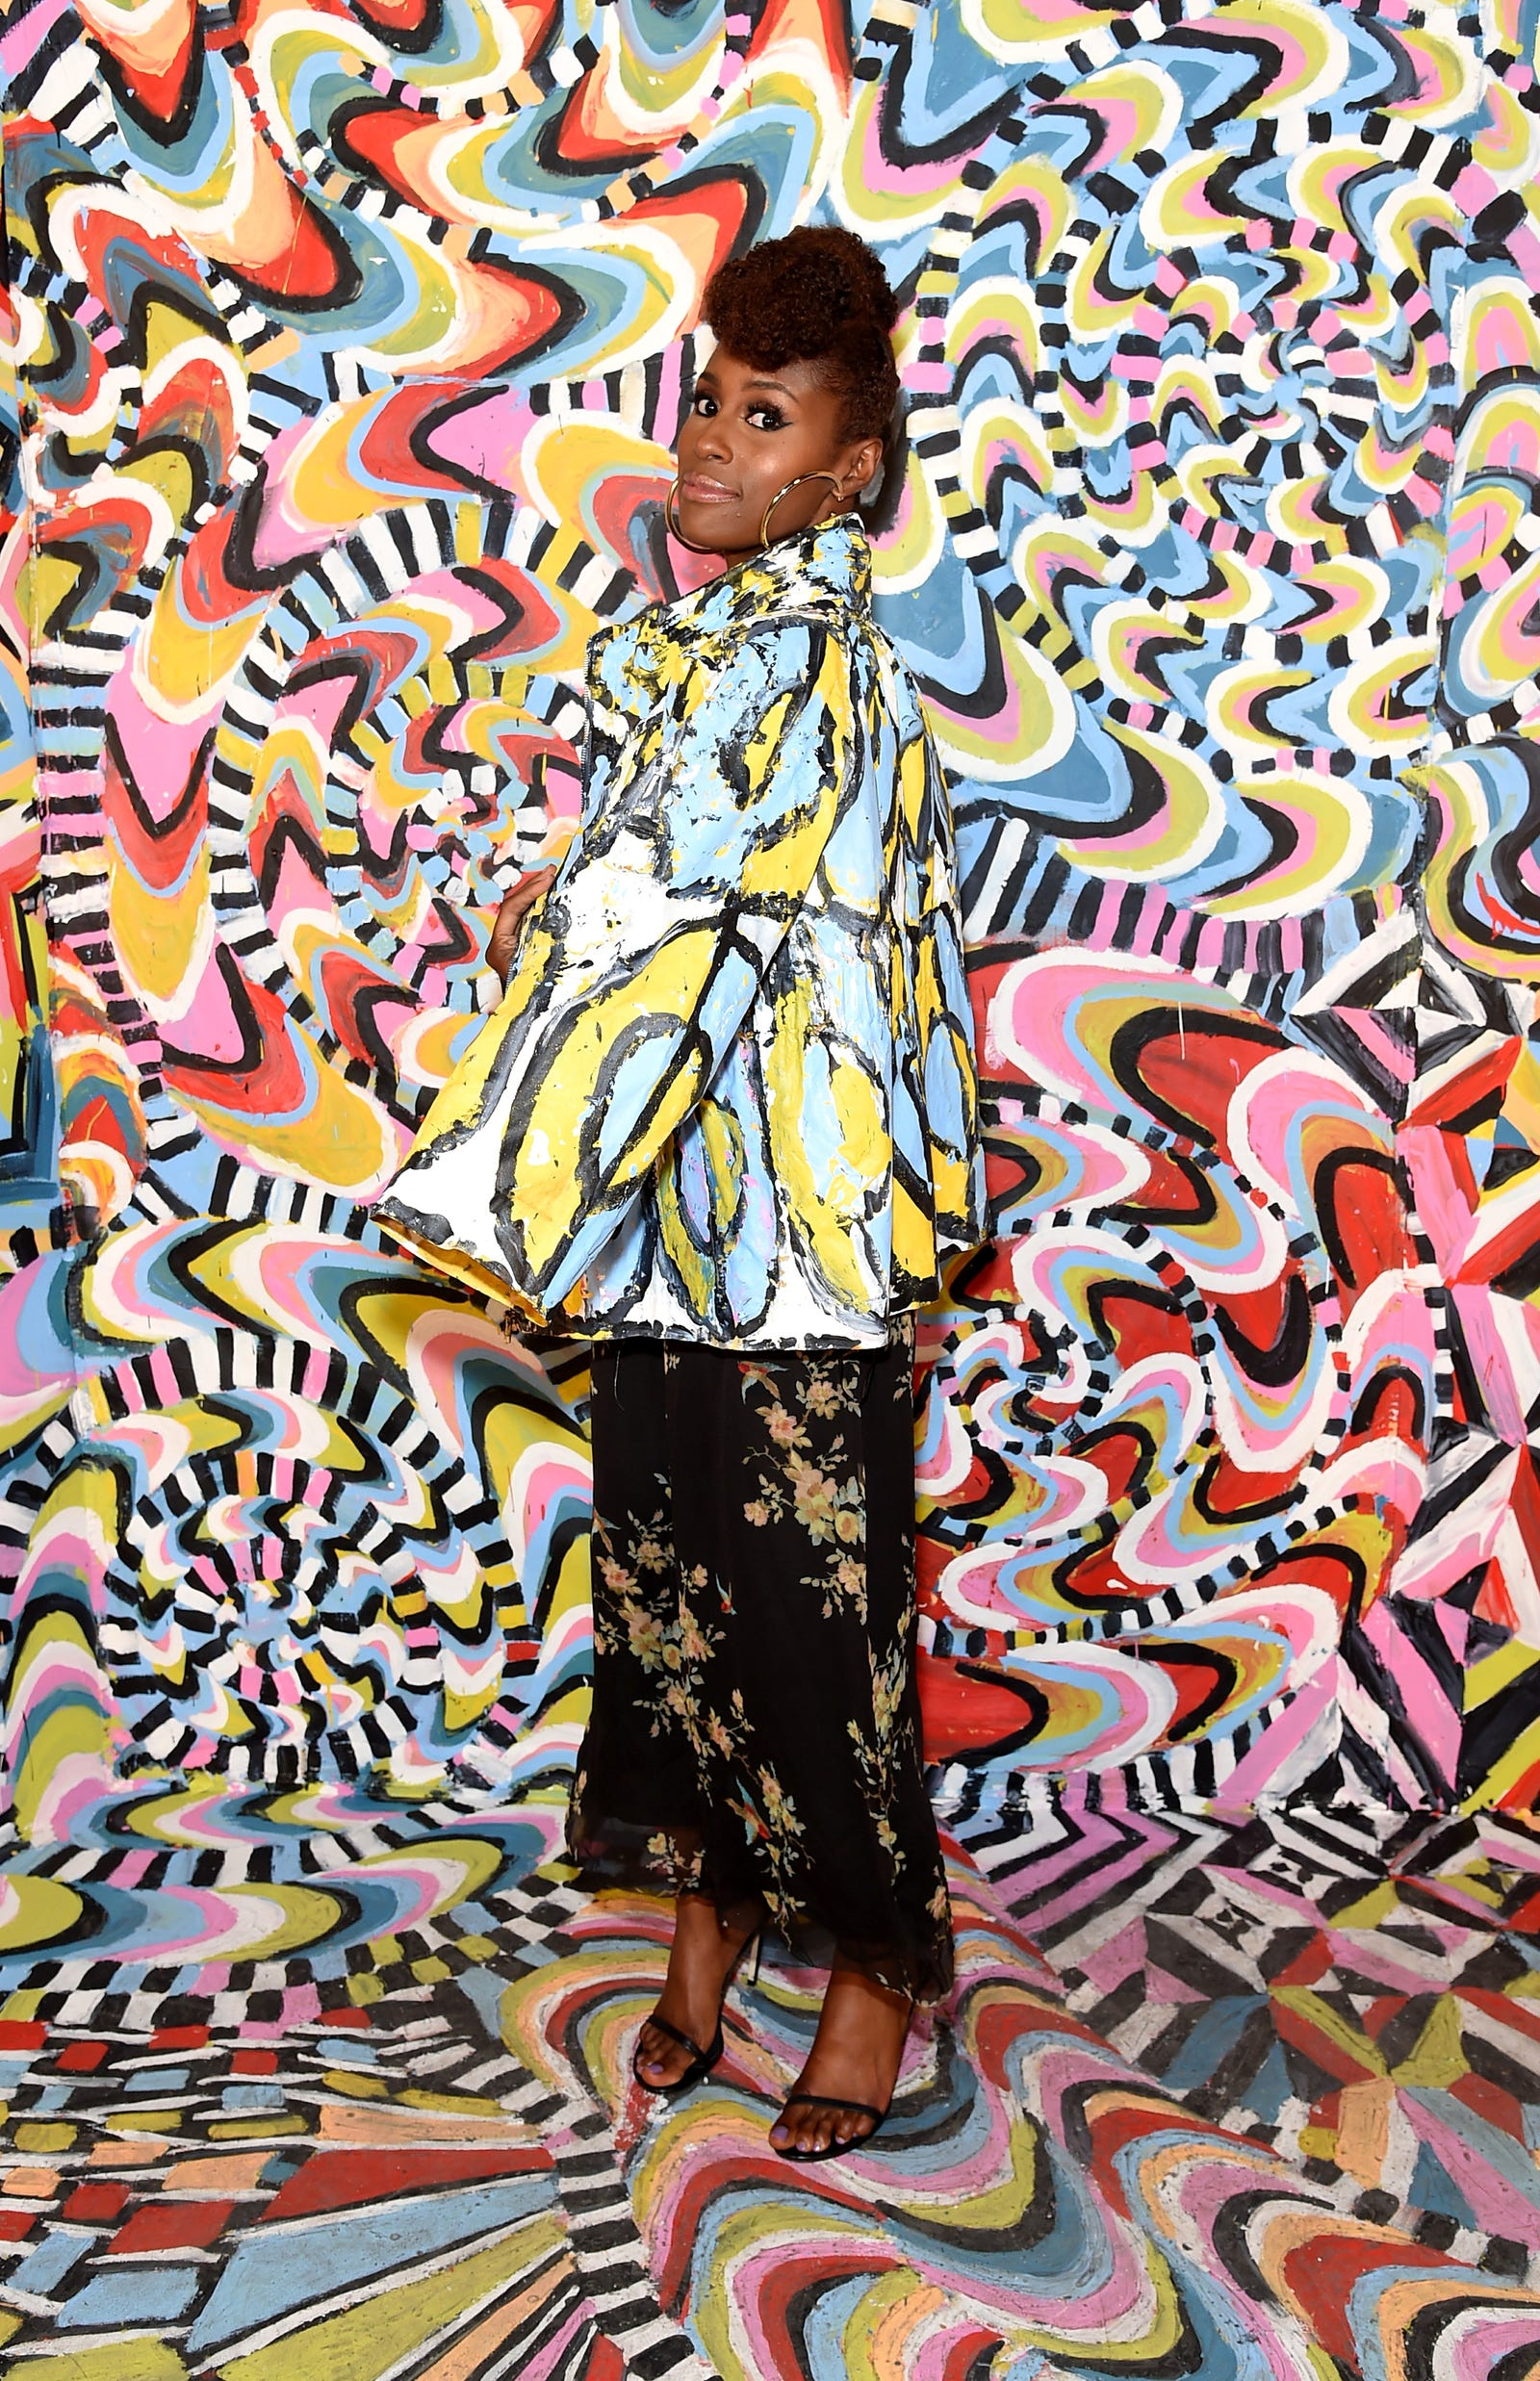 Issa Rae attends the Refinery29 Third Annual 29Rooms: Turn It Into Art event on Sept. 7, 2017, in the Brooklyn borough of New York City. (Jamie McCarthy/Getty Images for Refinery29)